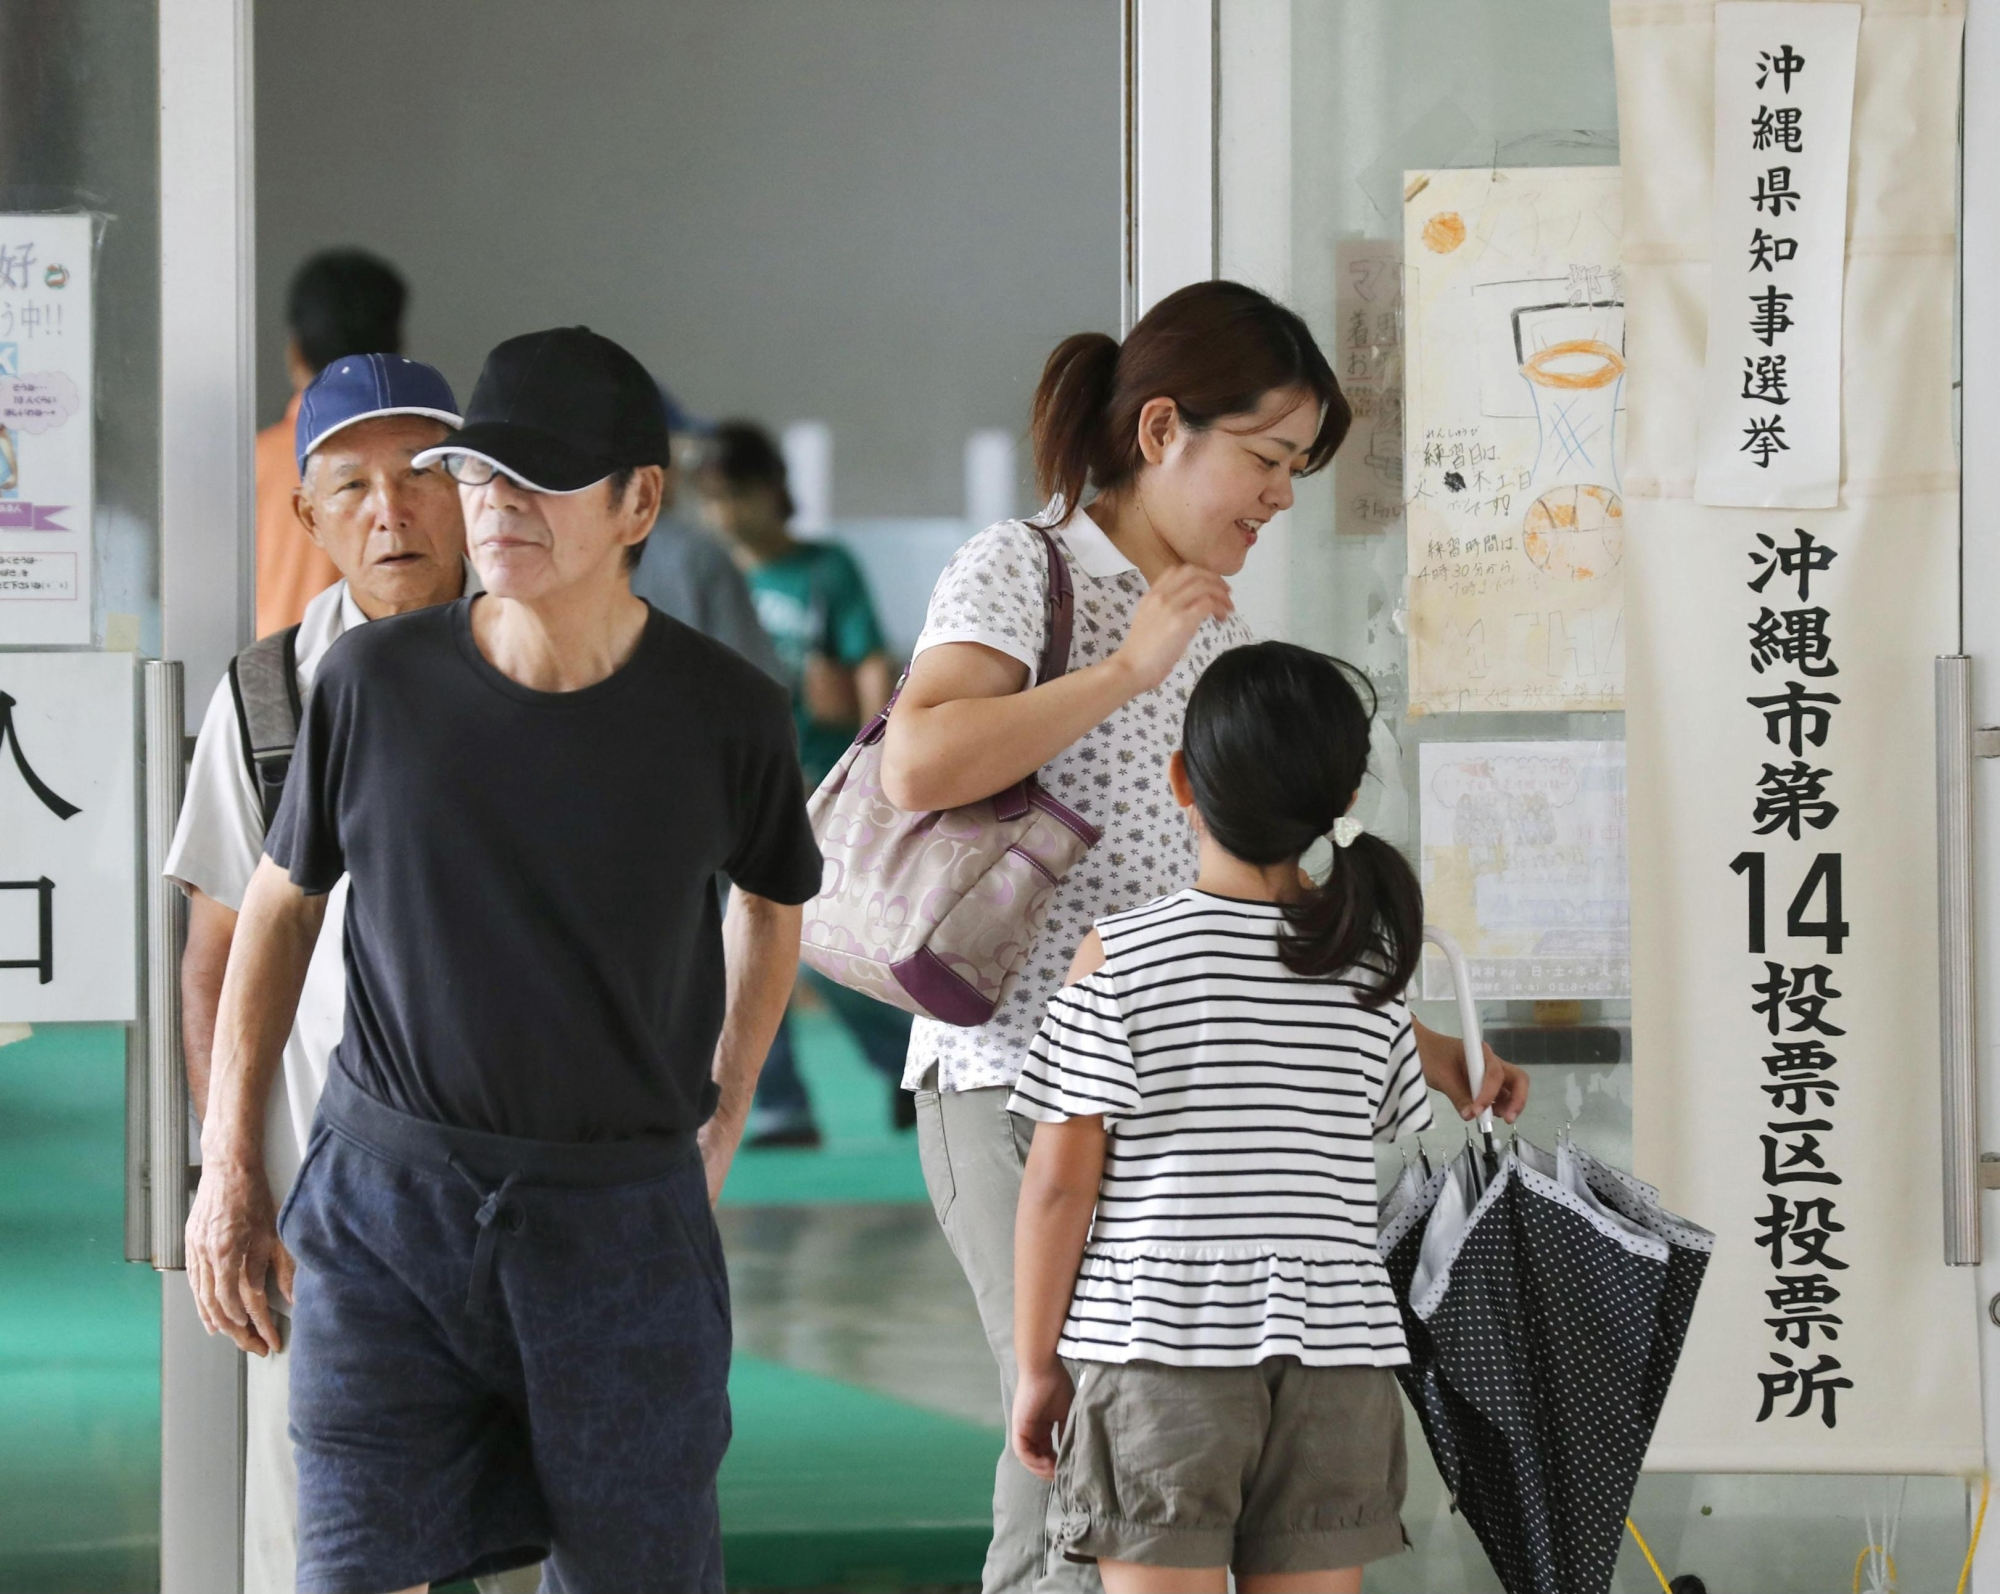 Voters leave a polling station in the city of Okinawa early Sunday. | KYODO